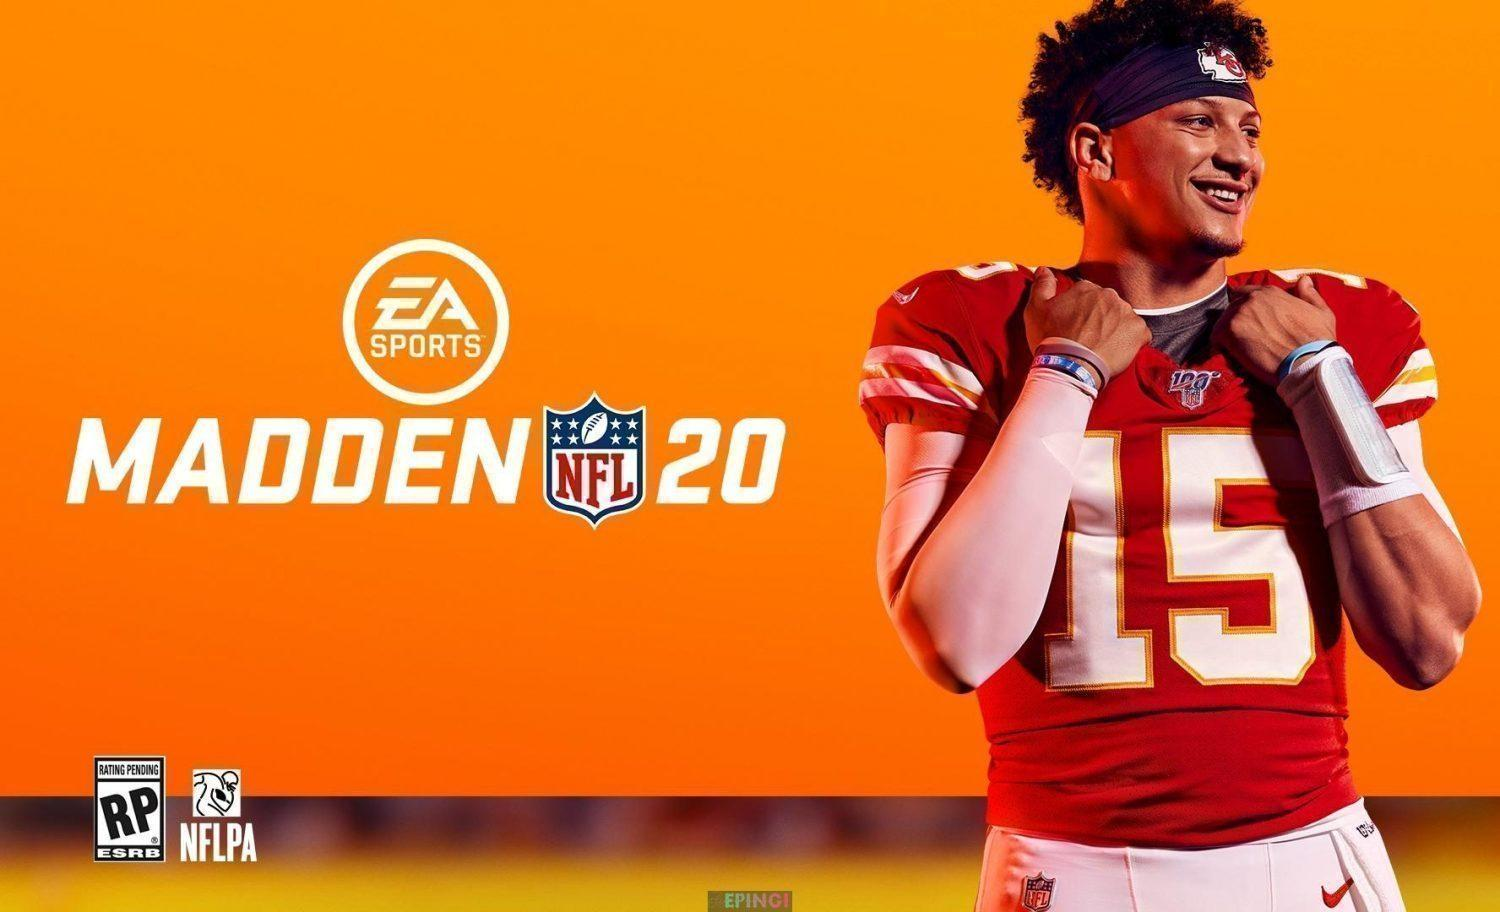 Madden NFL 20 Full Mobile Game Free Download